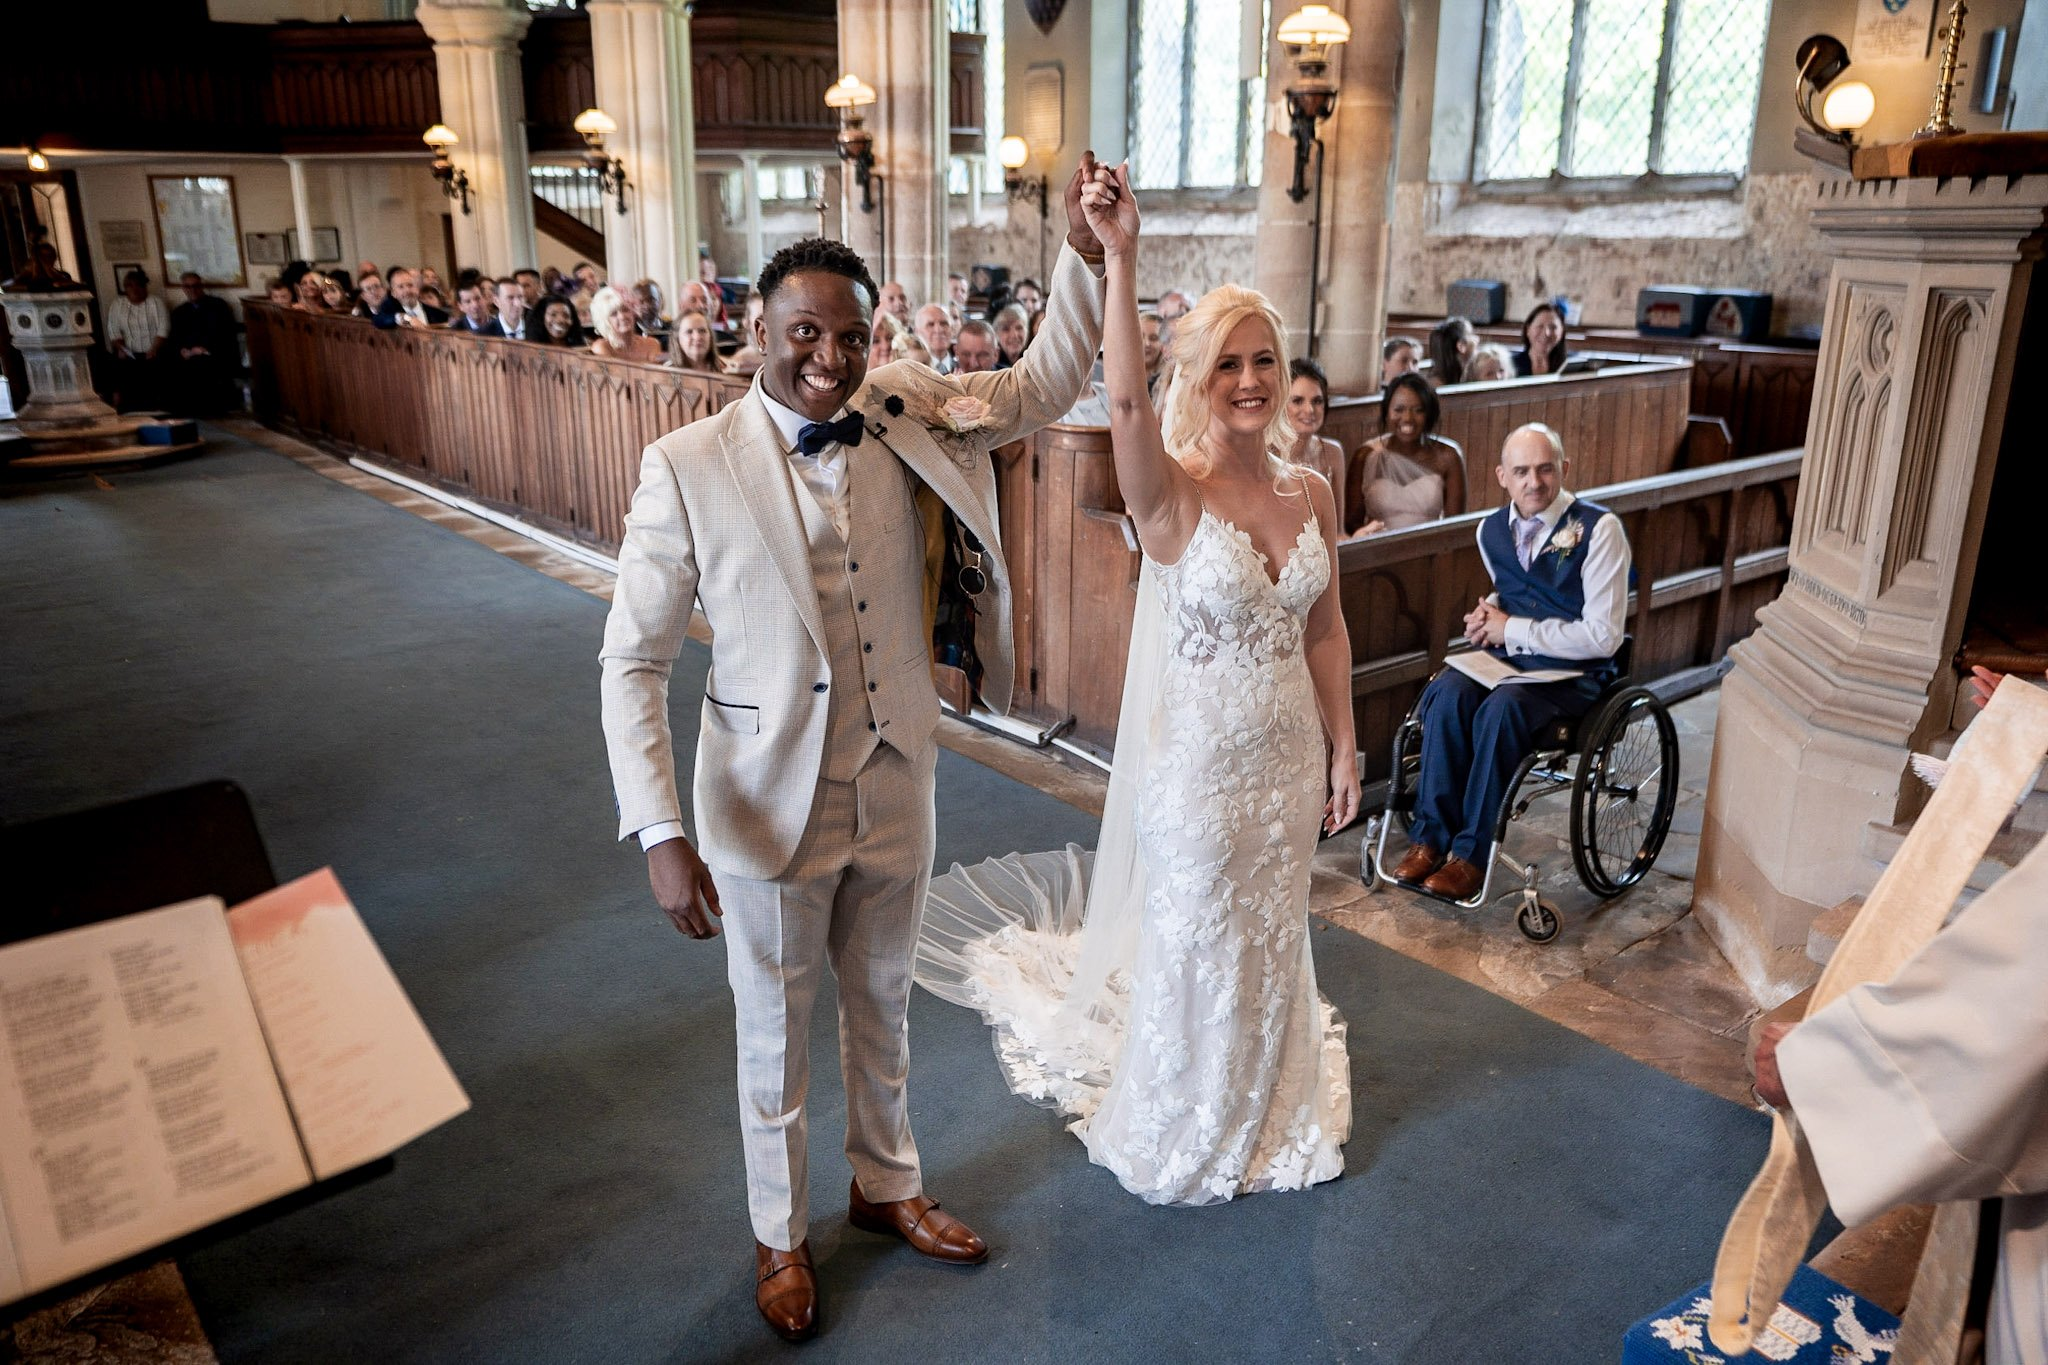 Your Favourite Frame YFFUK Mwasuku St Michaels Church Appleby Magna bride and groom raising their hands held together in the air to salute their guests and their vows standard view from the choral pews